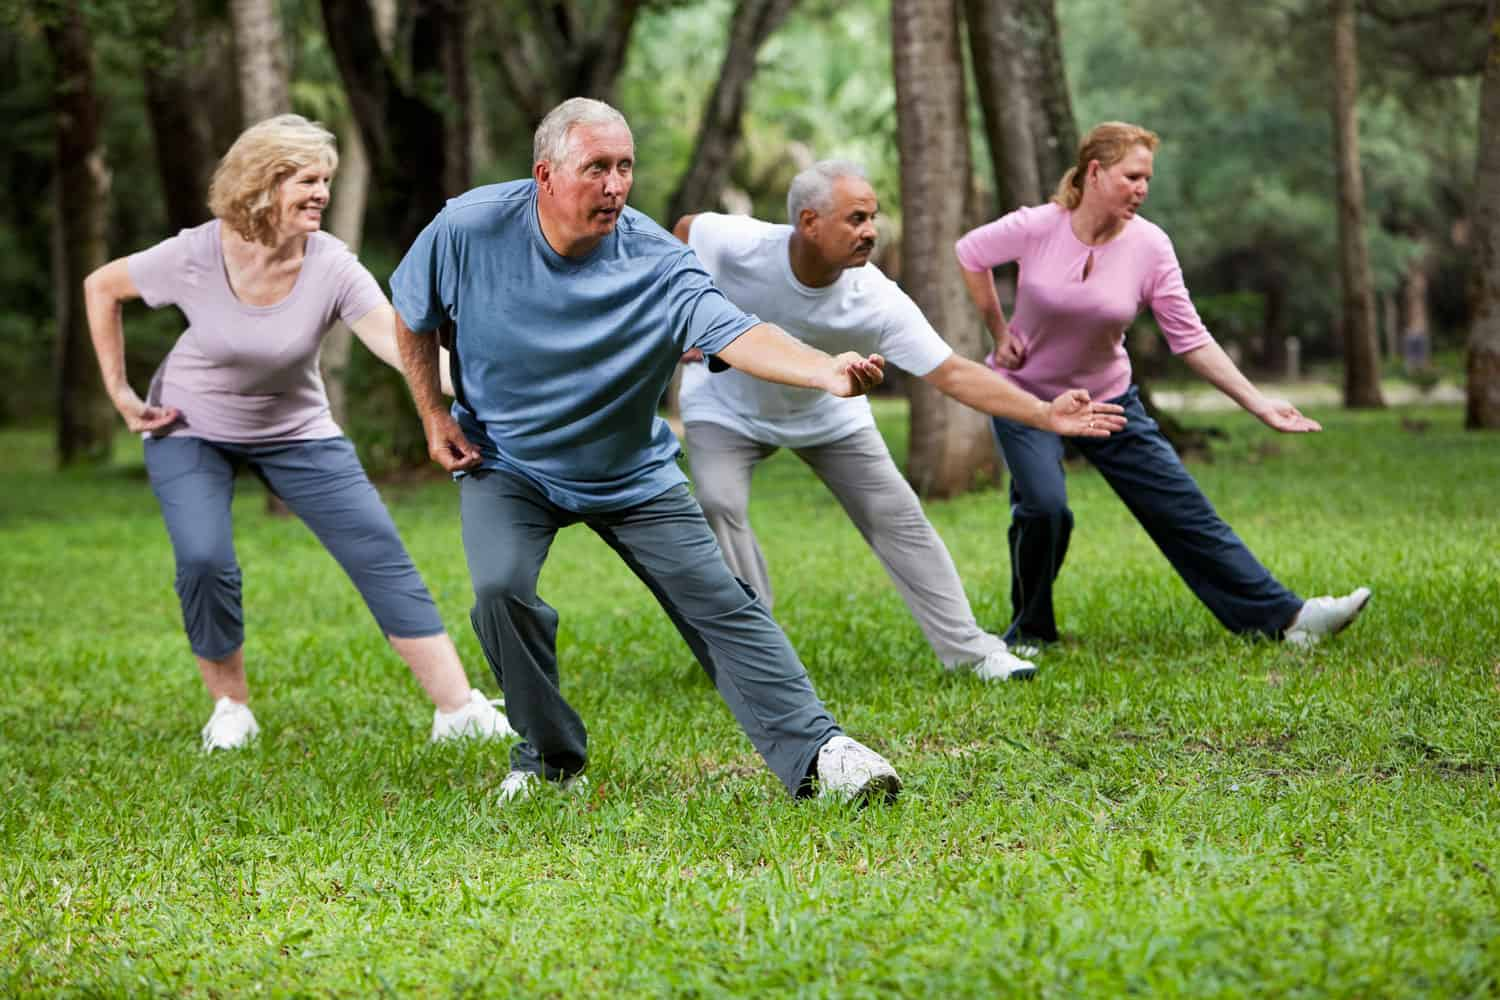 Multi-ethnic group of adults practicing Tai Chi in park